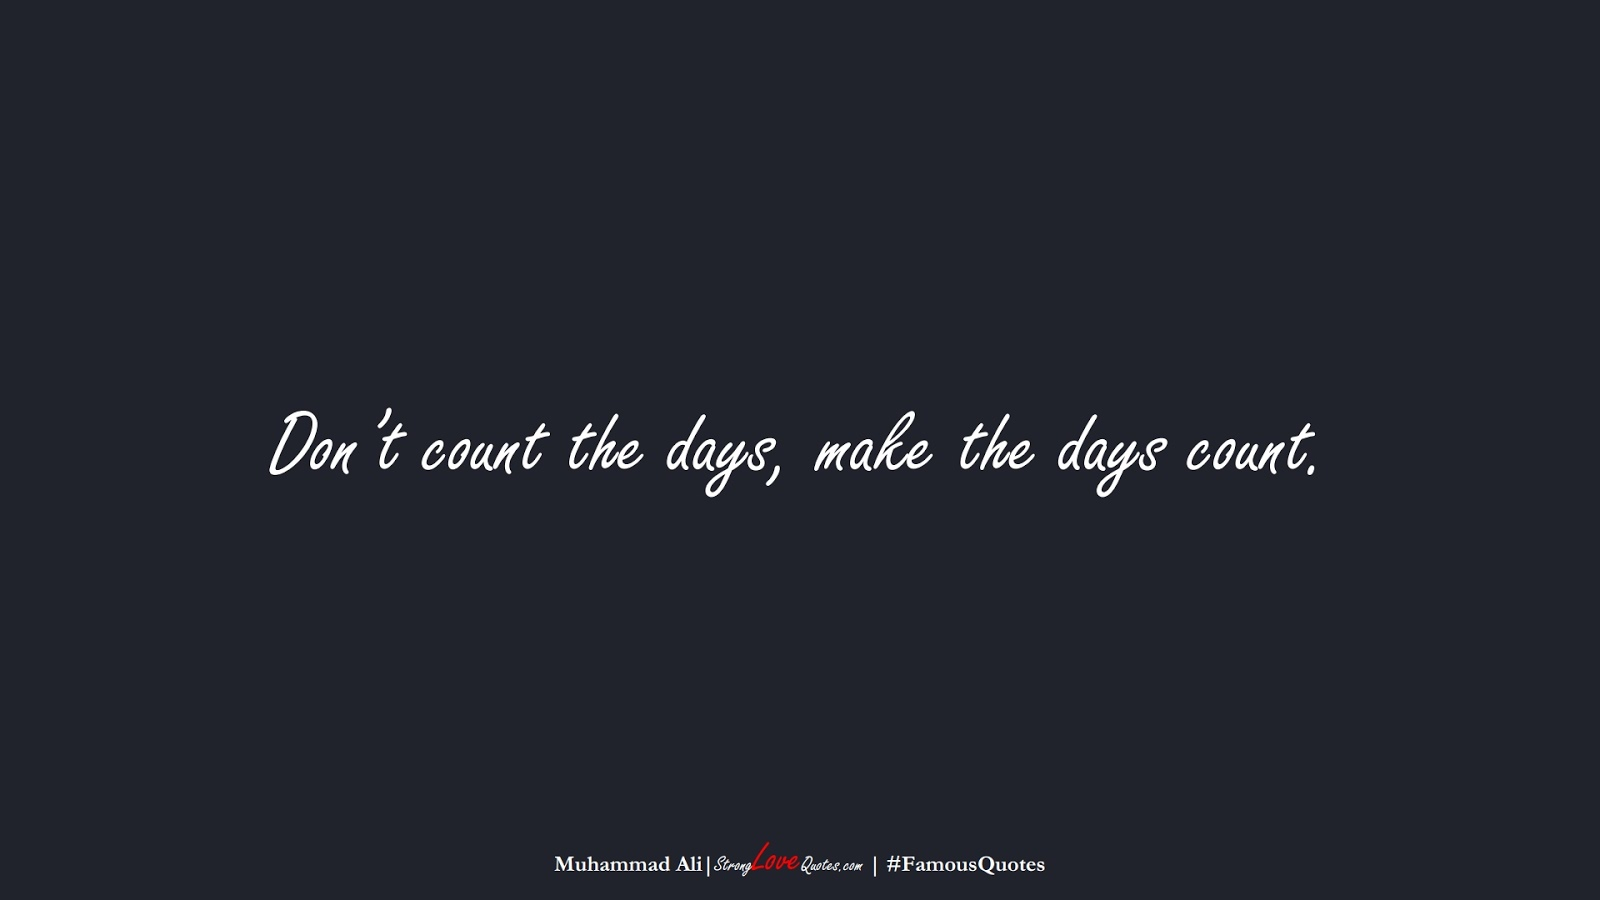 Don't count the days, make the days count. (Muhammad Ali);  #FamousQuotes